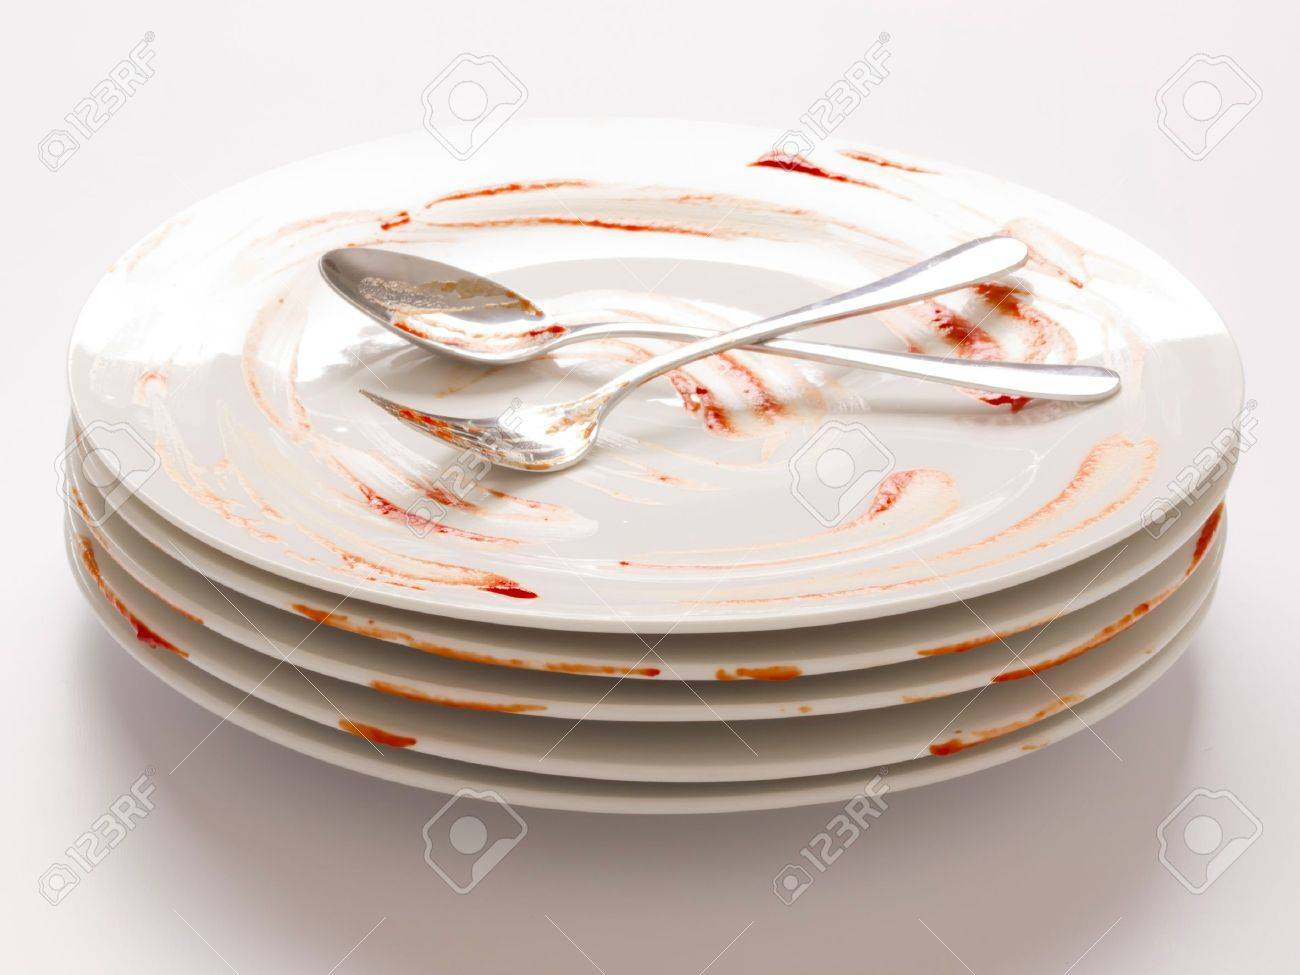 close up of a stack of dirty plates Stock Photo - 9869816